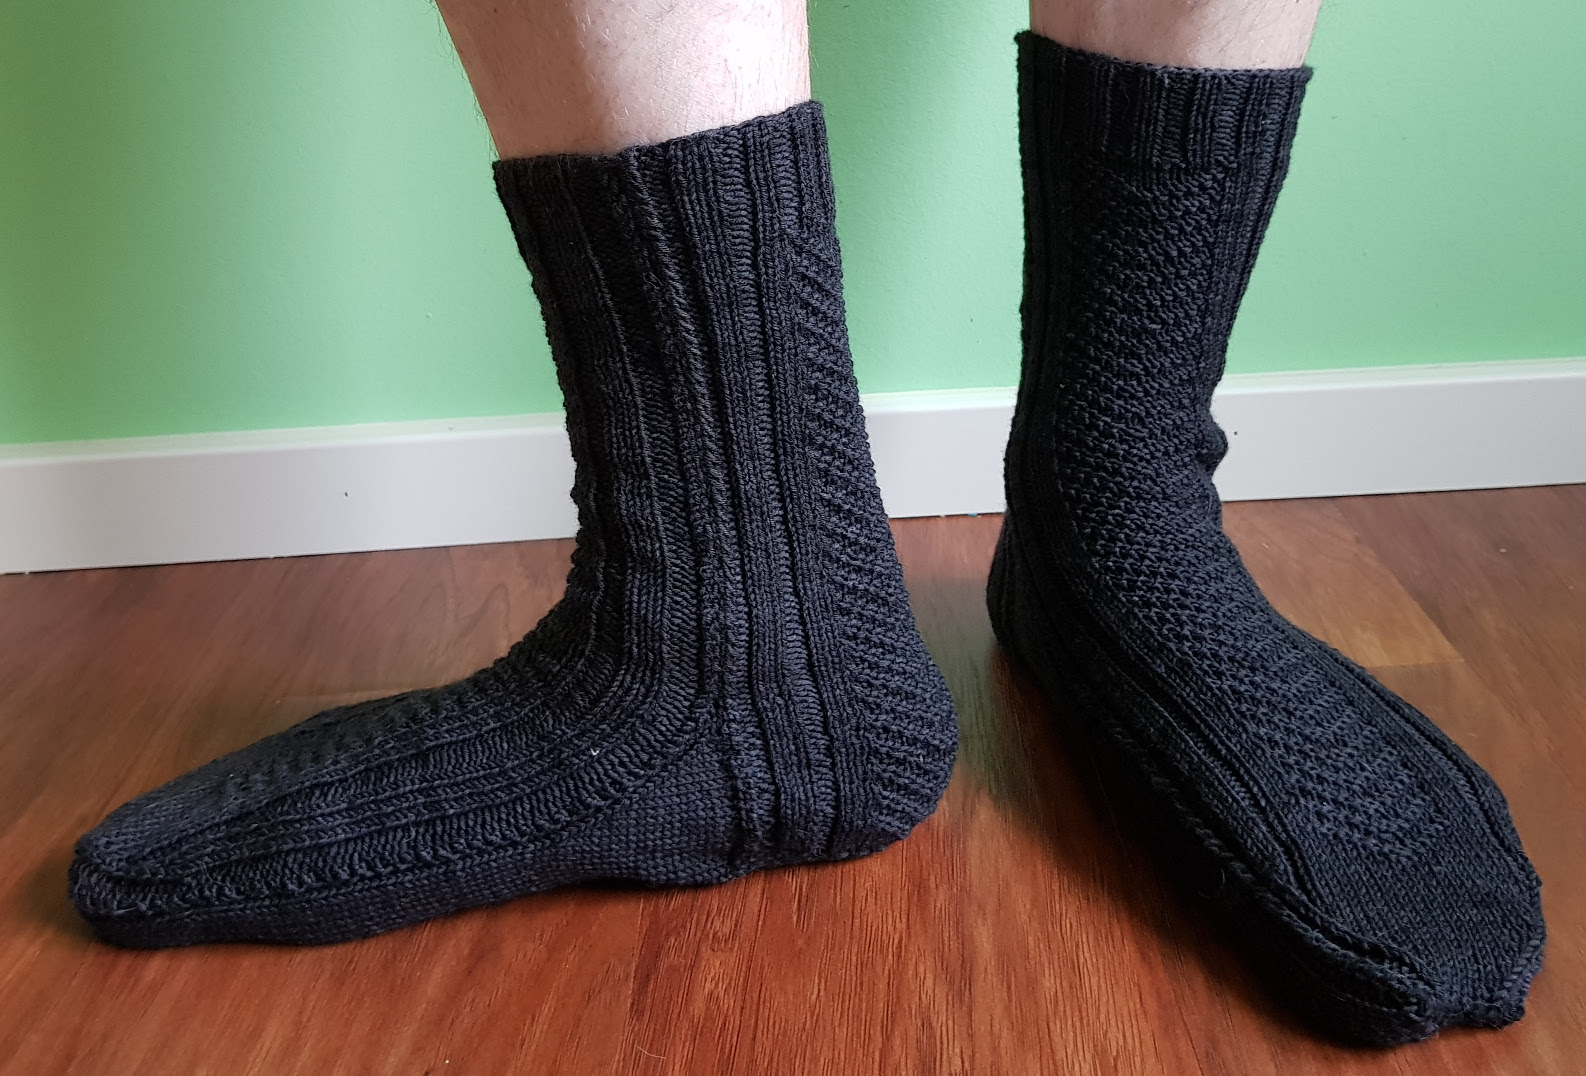 V-Formation free sock knitting pattern by Nadja Senoucci